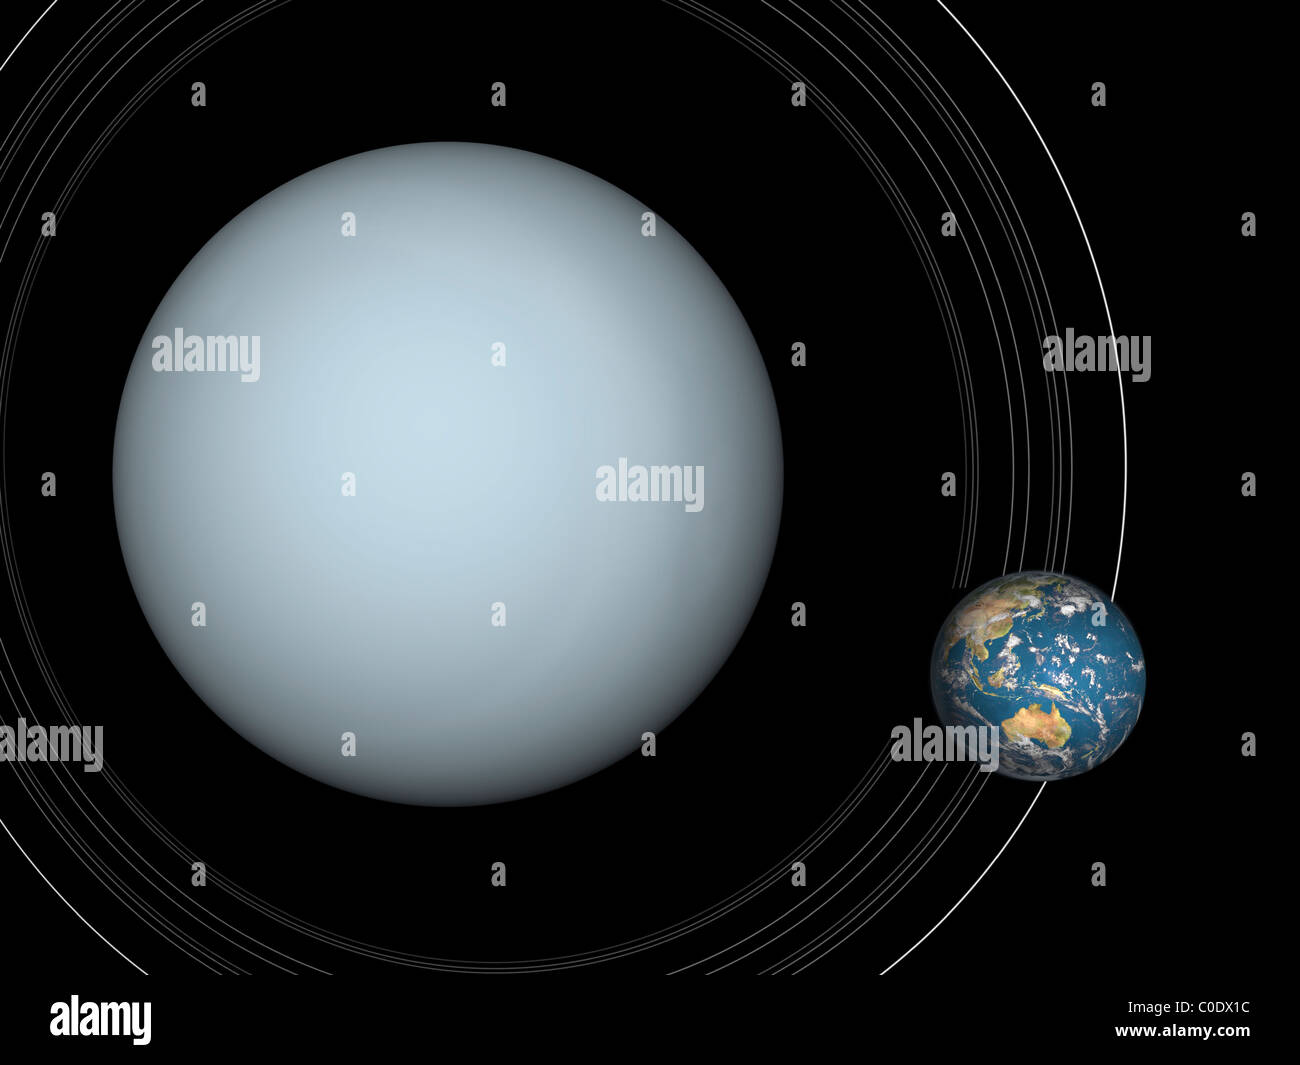 Artist's concept of Uranus and Earth to scale. - Stock Image